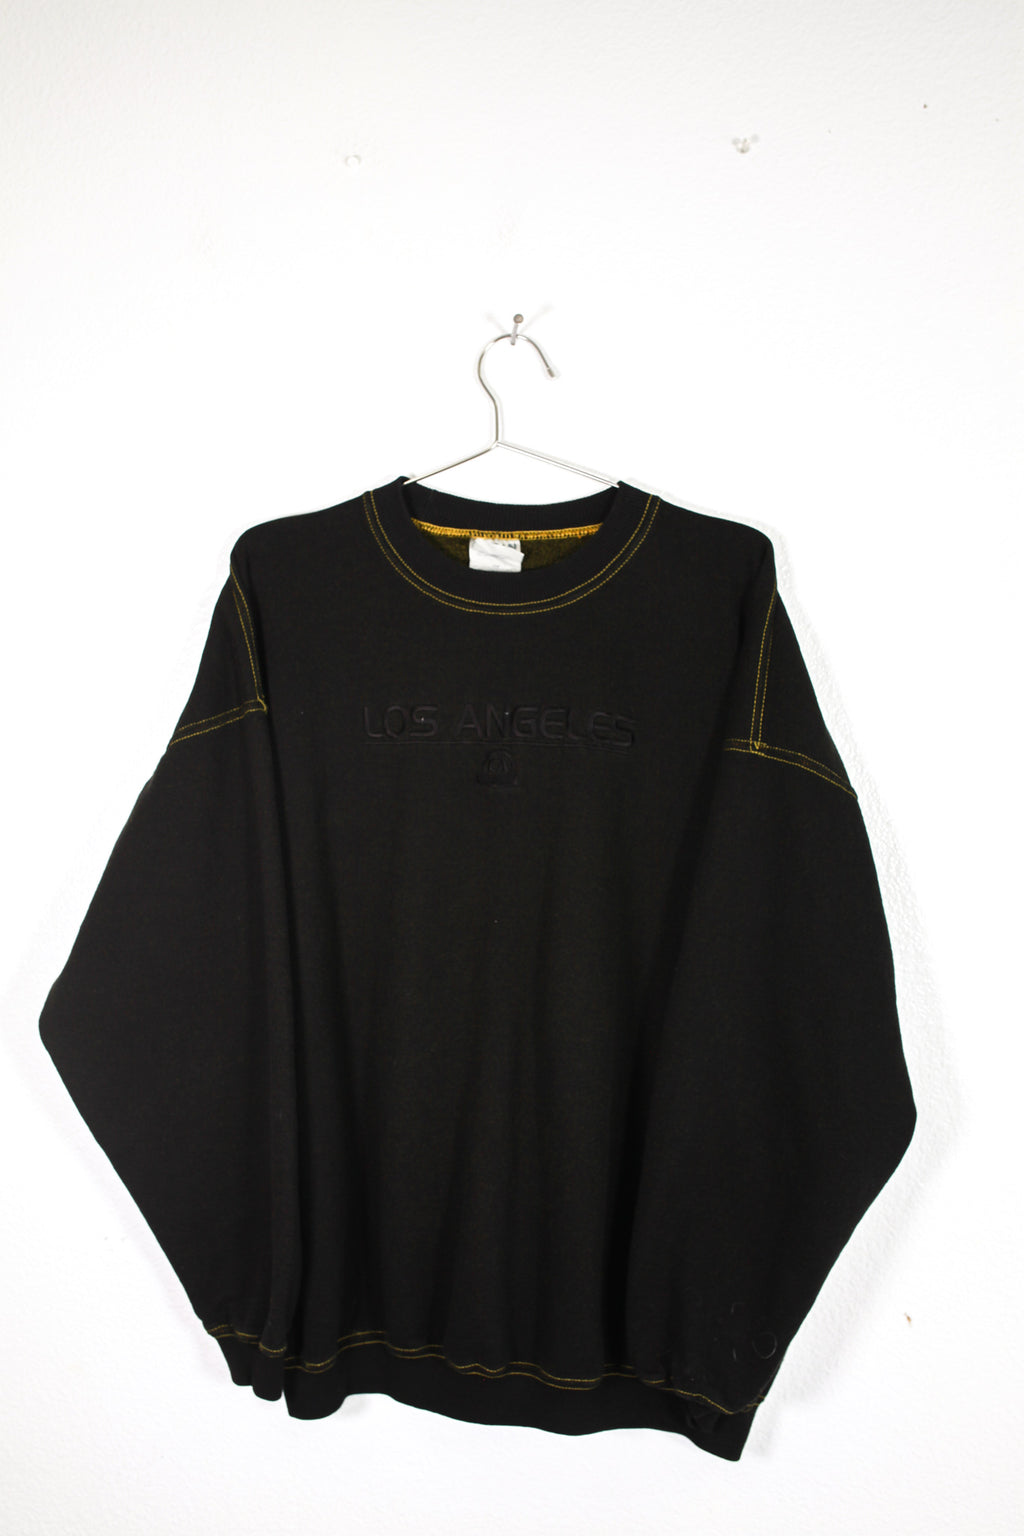 Vintage Los Angeles Noir Sweatshirt